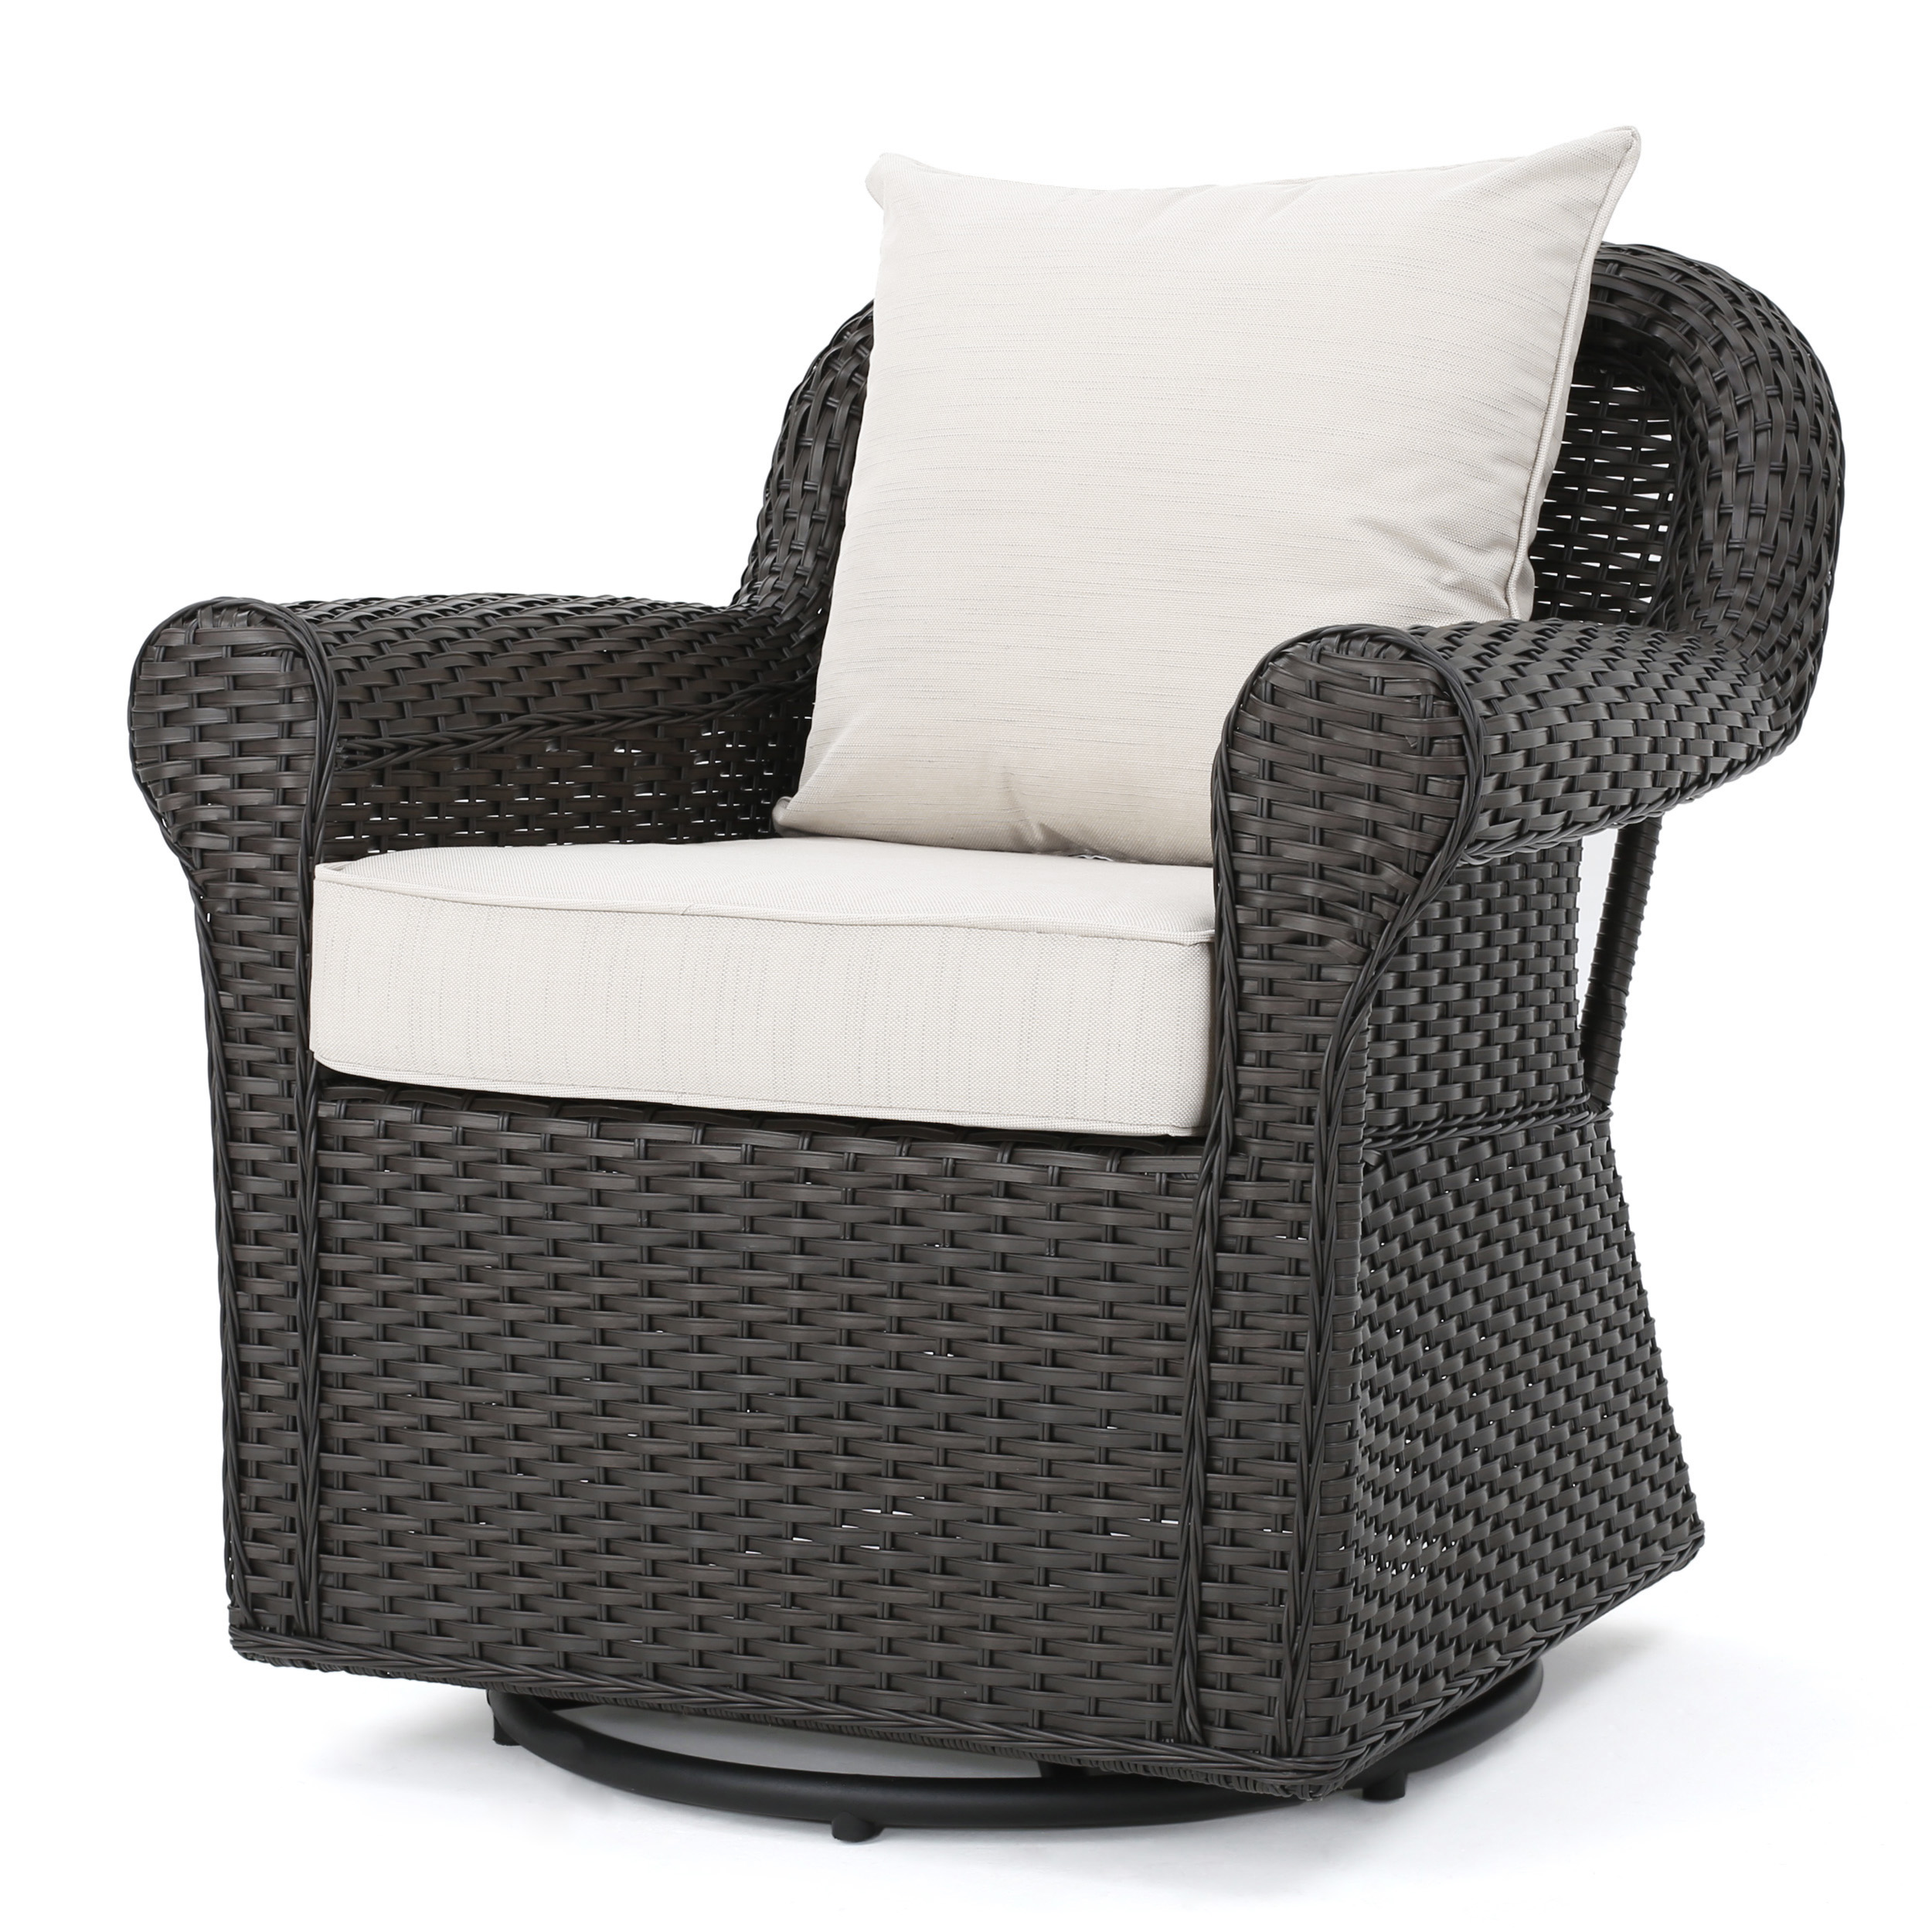 swivel and rocking chairs. Admiral Outdoor Dark Brown Wicker Swivel Rocking Chair With Cushions, Beige And Chairs R